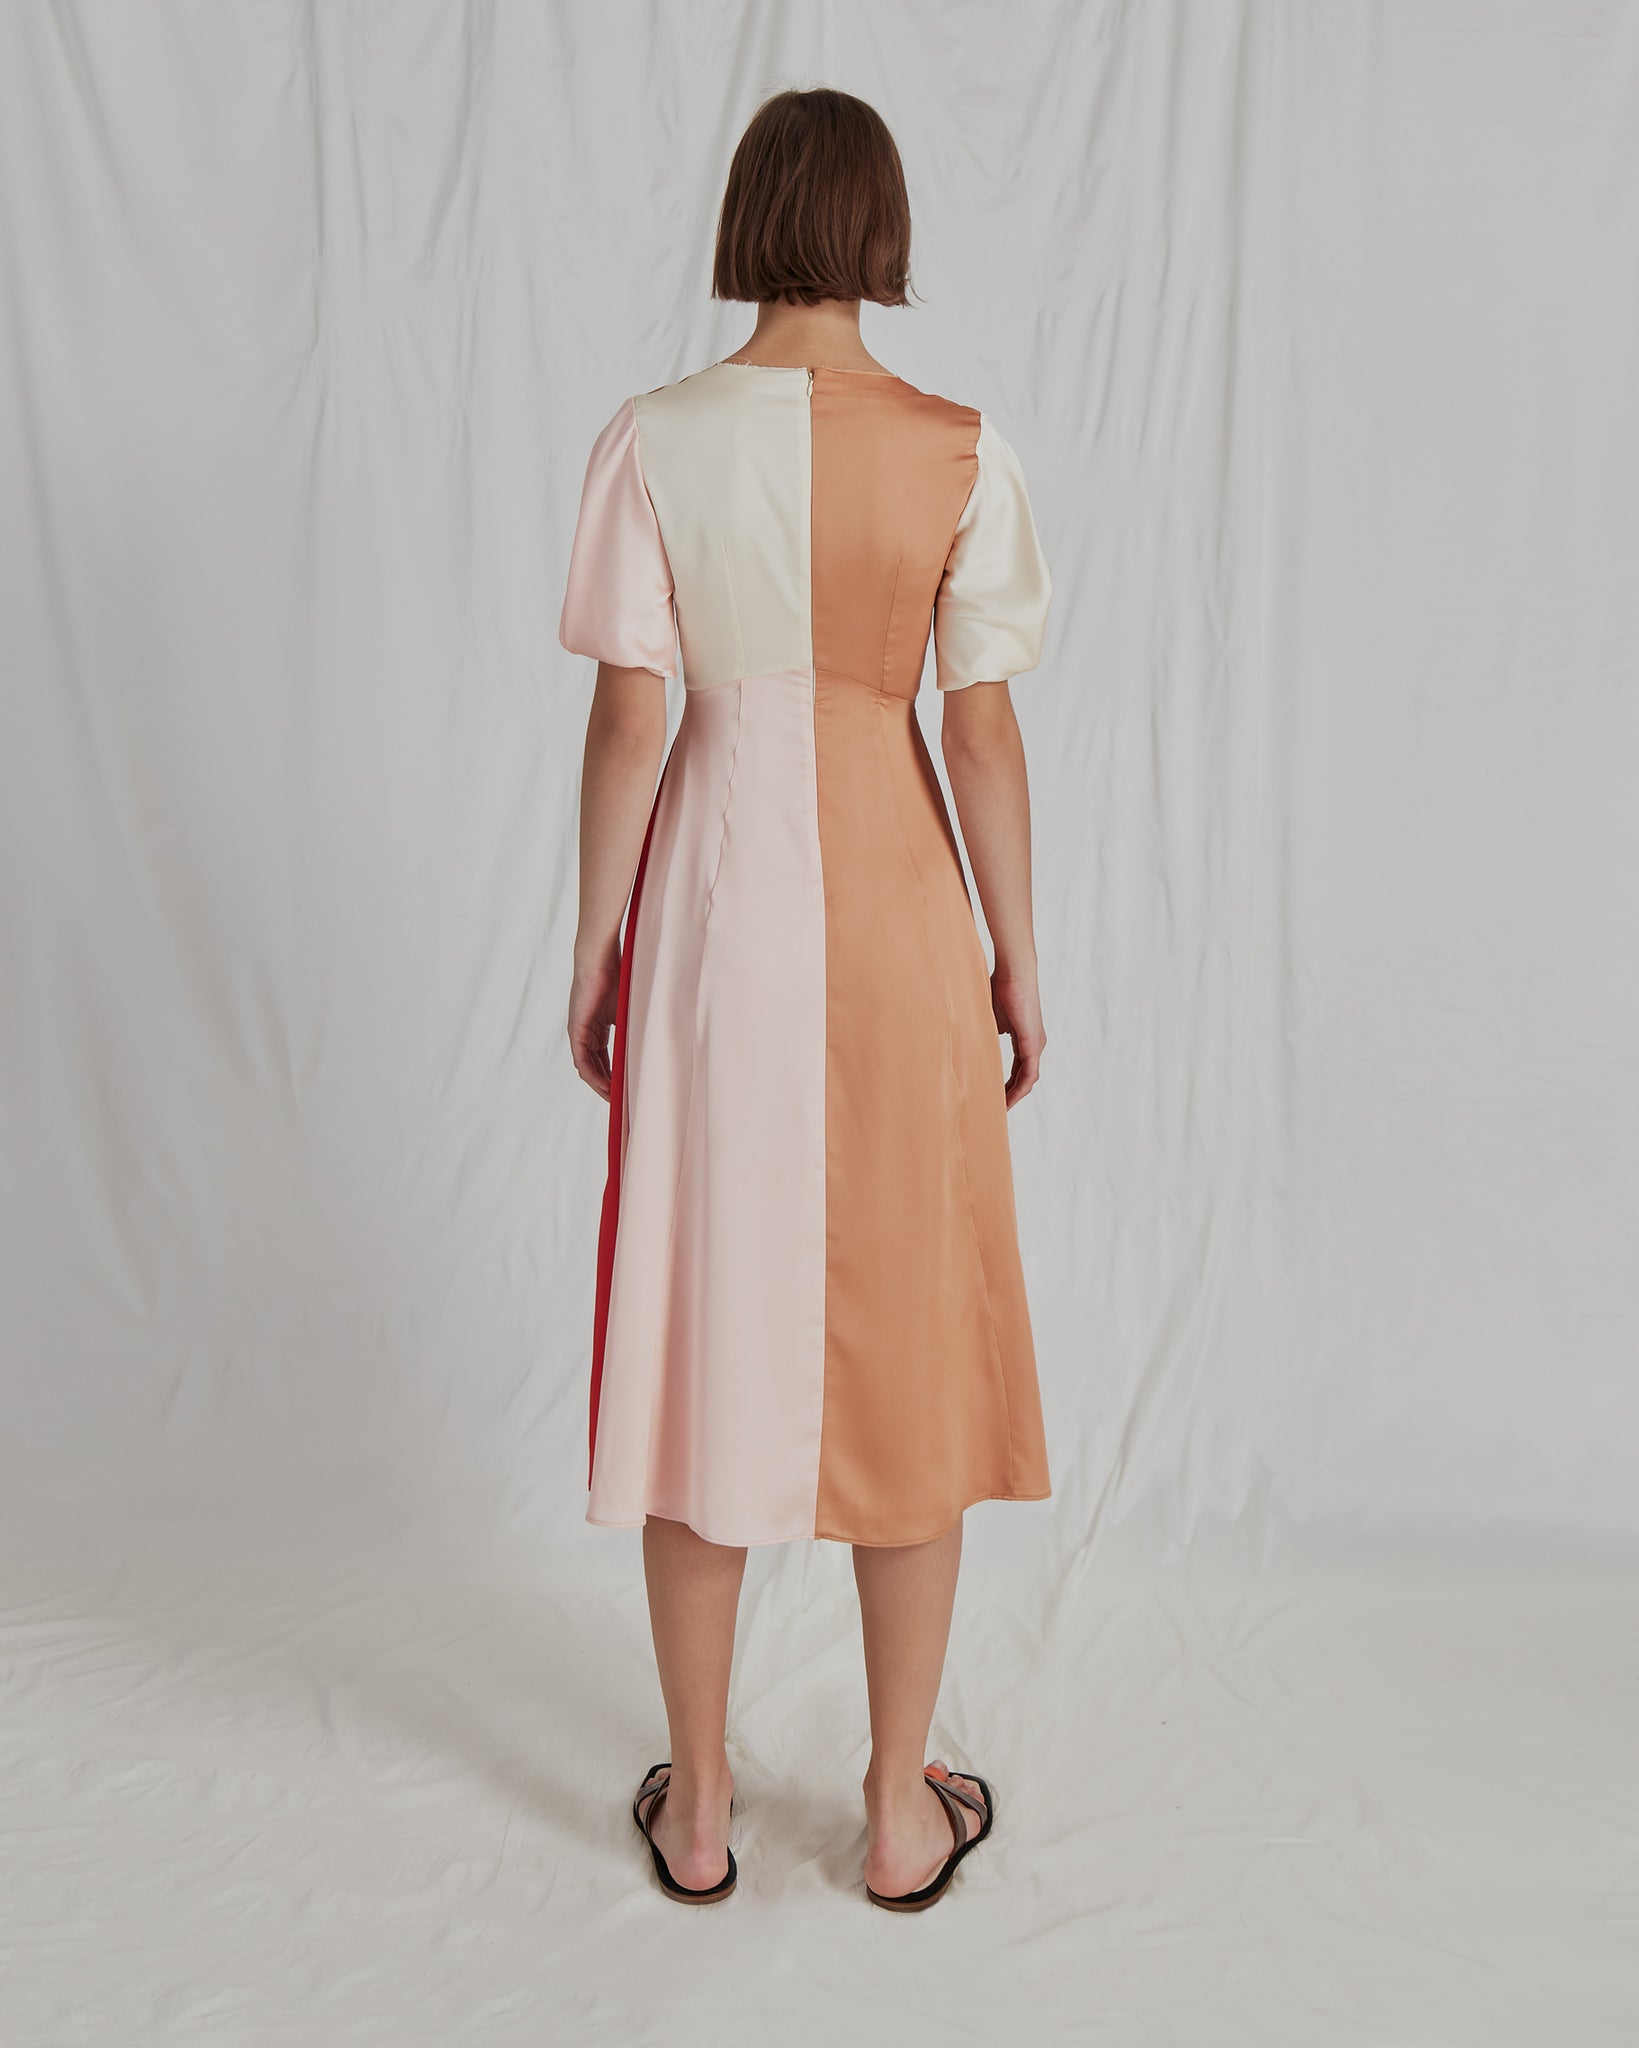 Harriet Dress Satin Red and Ivory Blush - SPECIAL PRICE